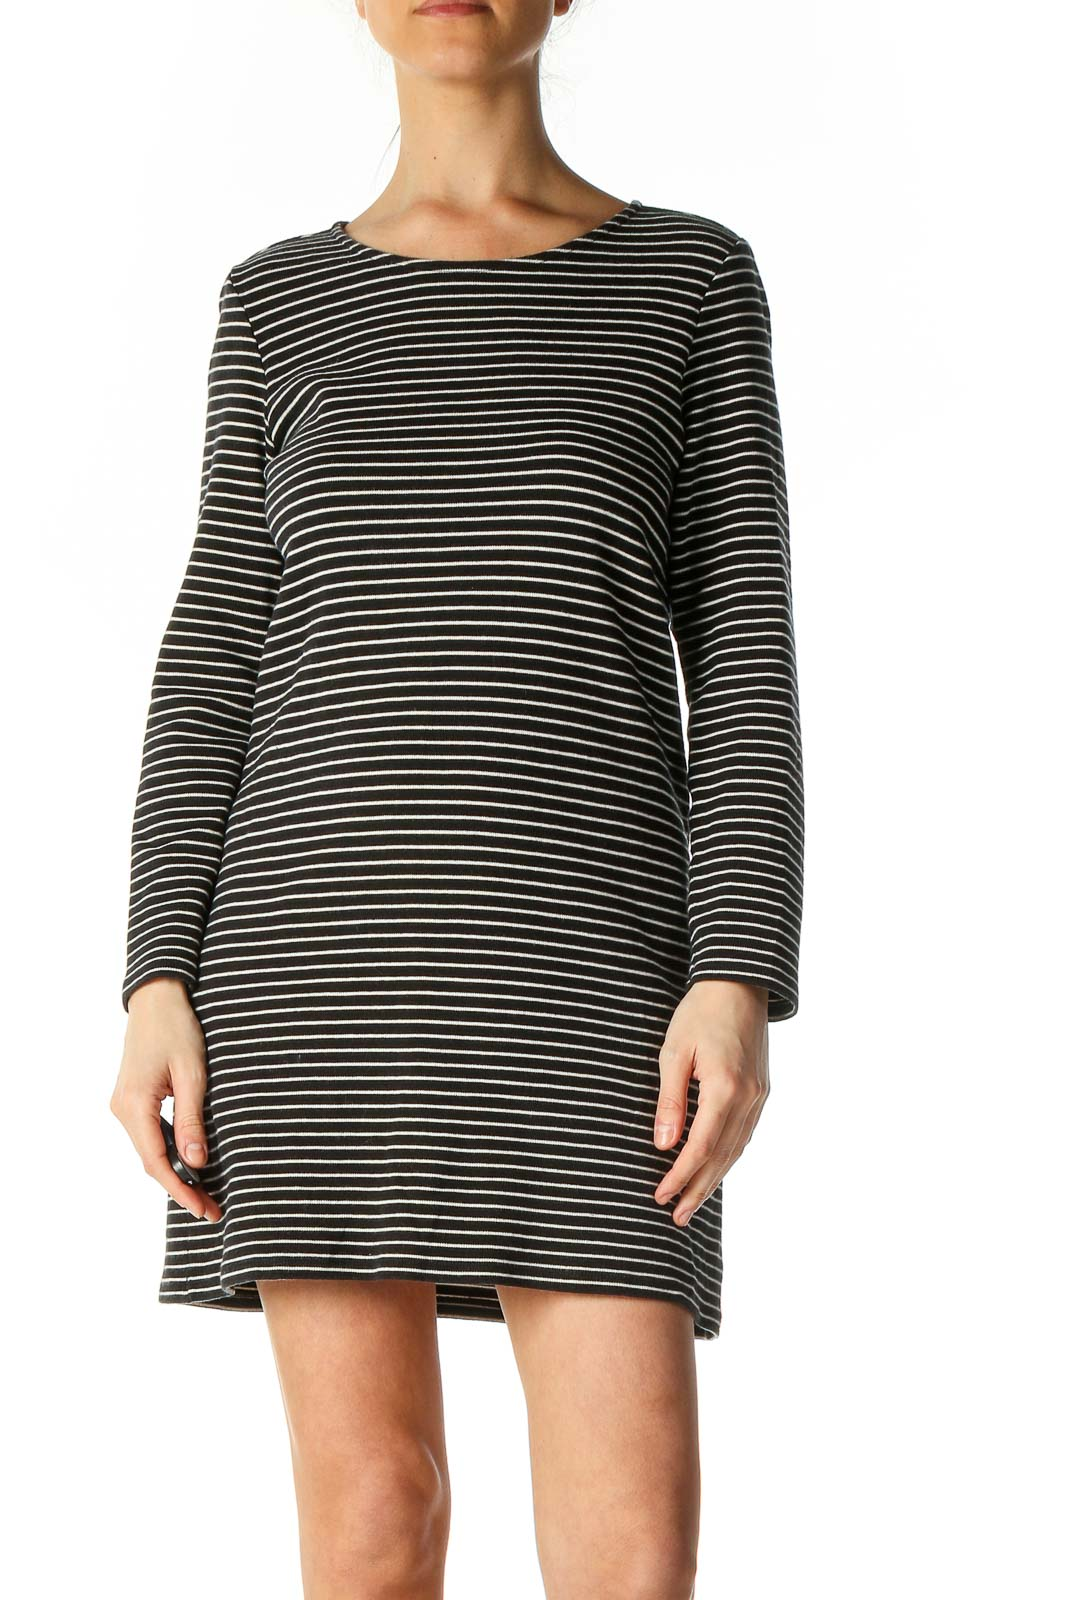 Black Striped Casual Shift Dress Front